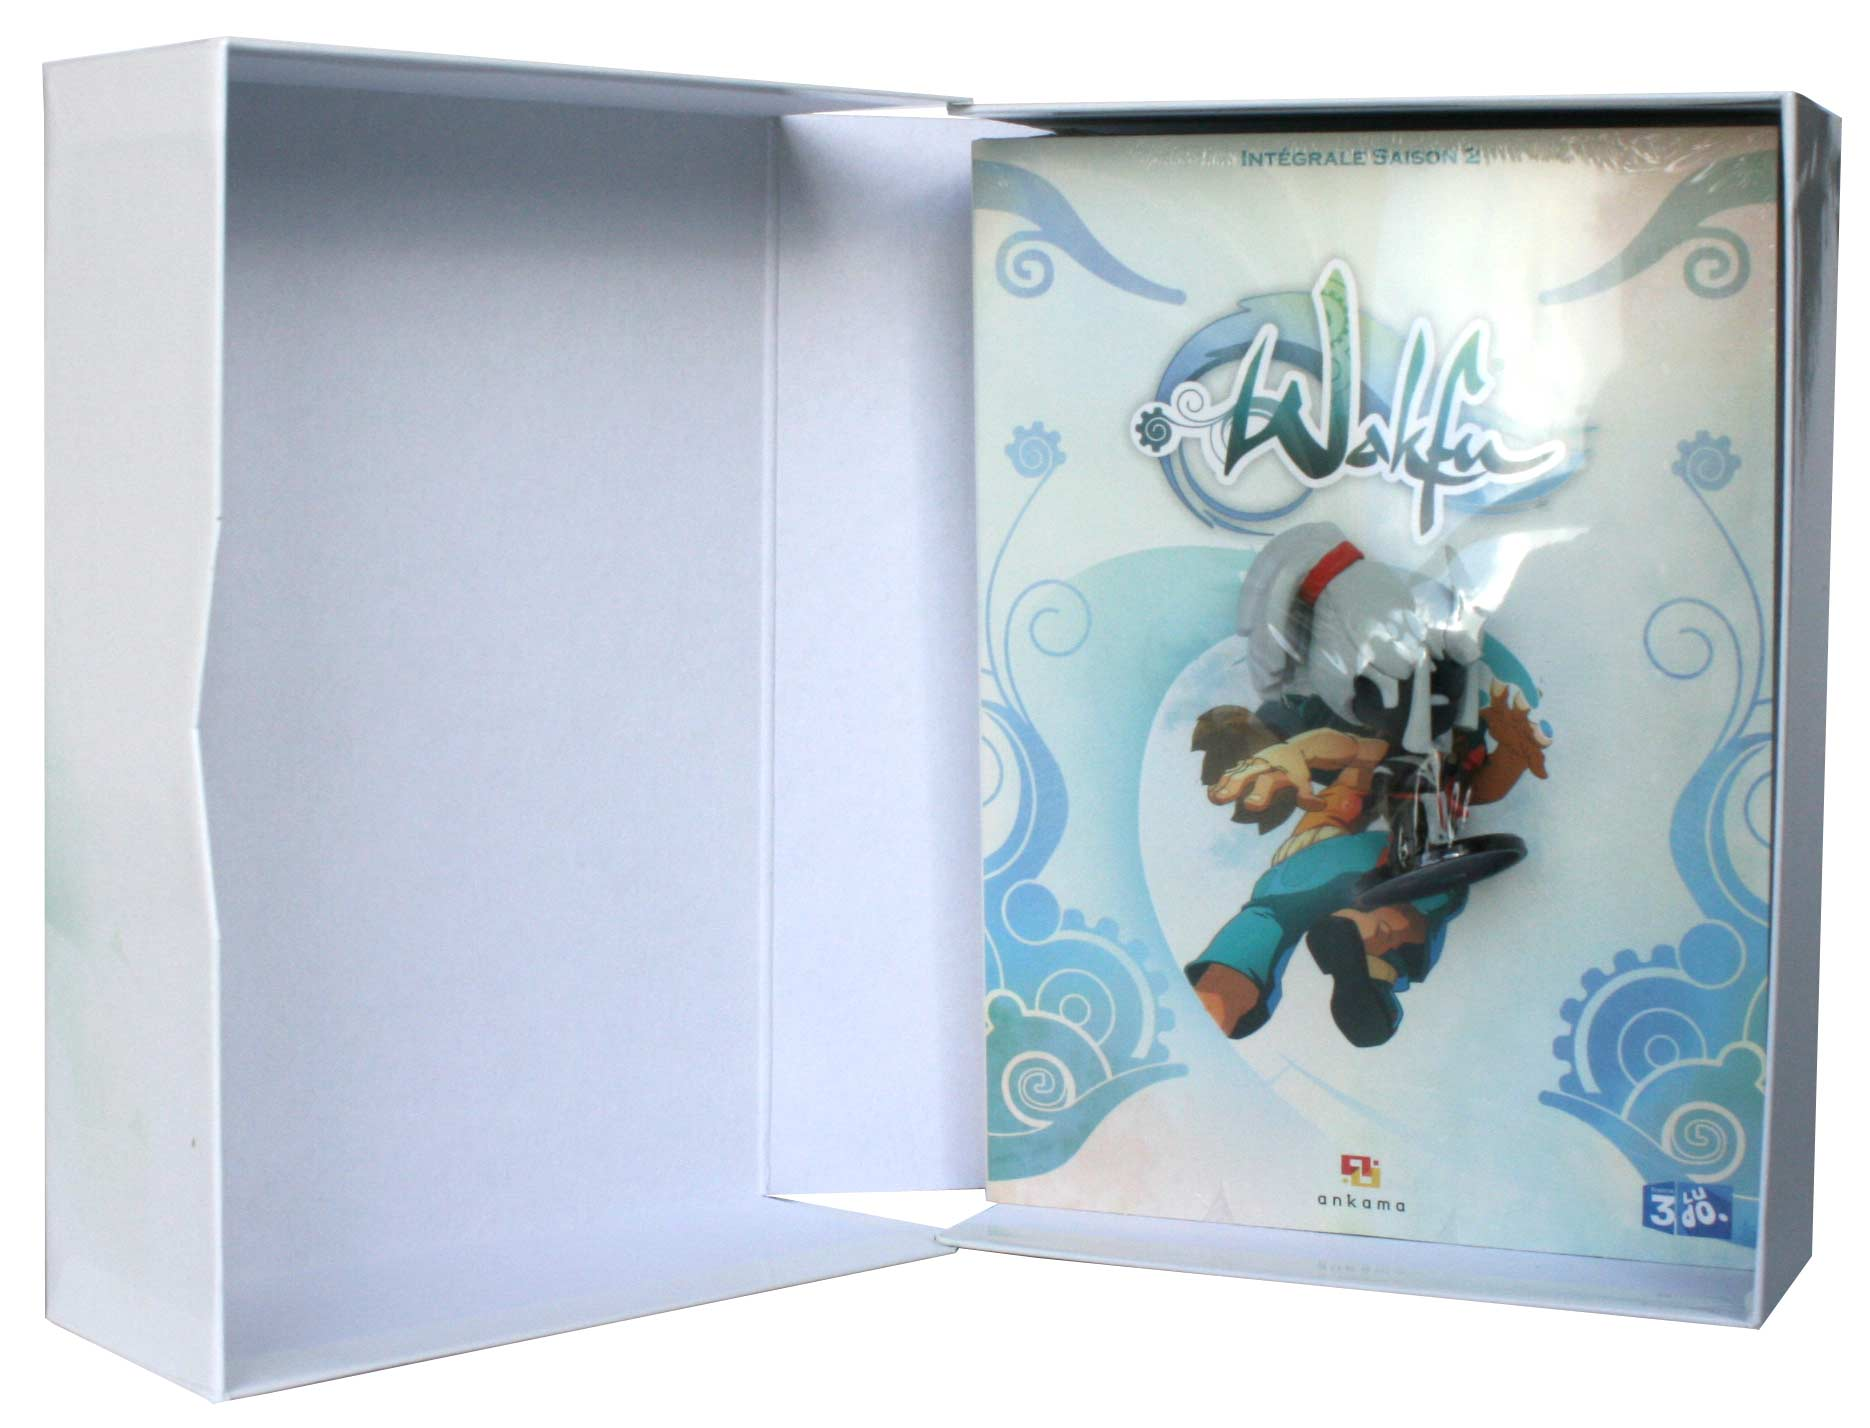 Figurine_SD_Goultard_possede_packaging_07_ouverture